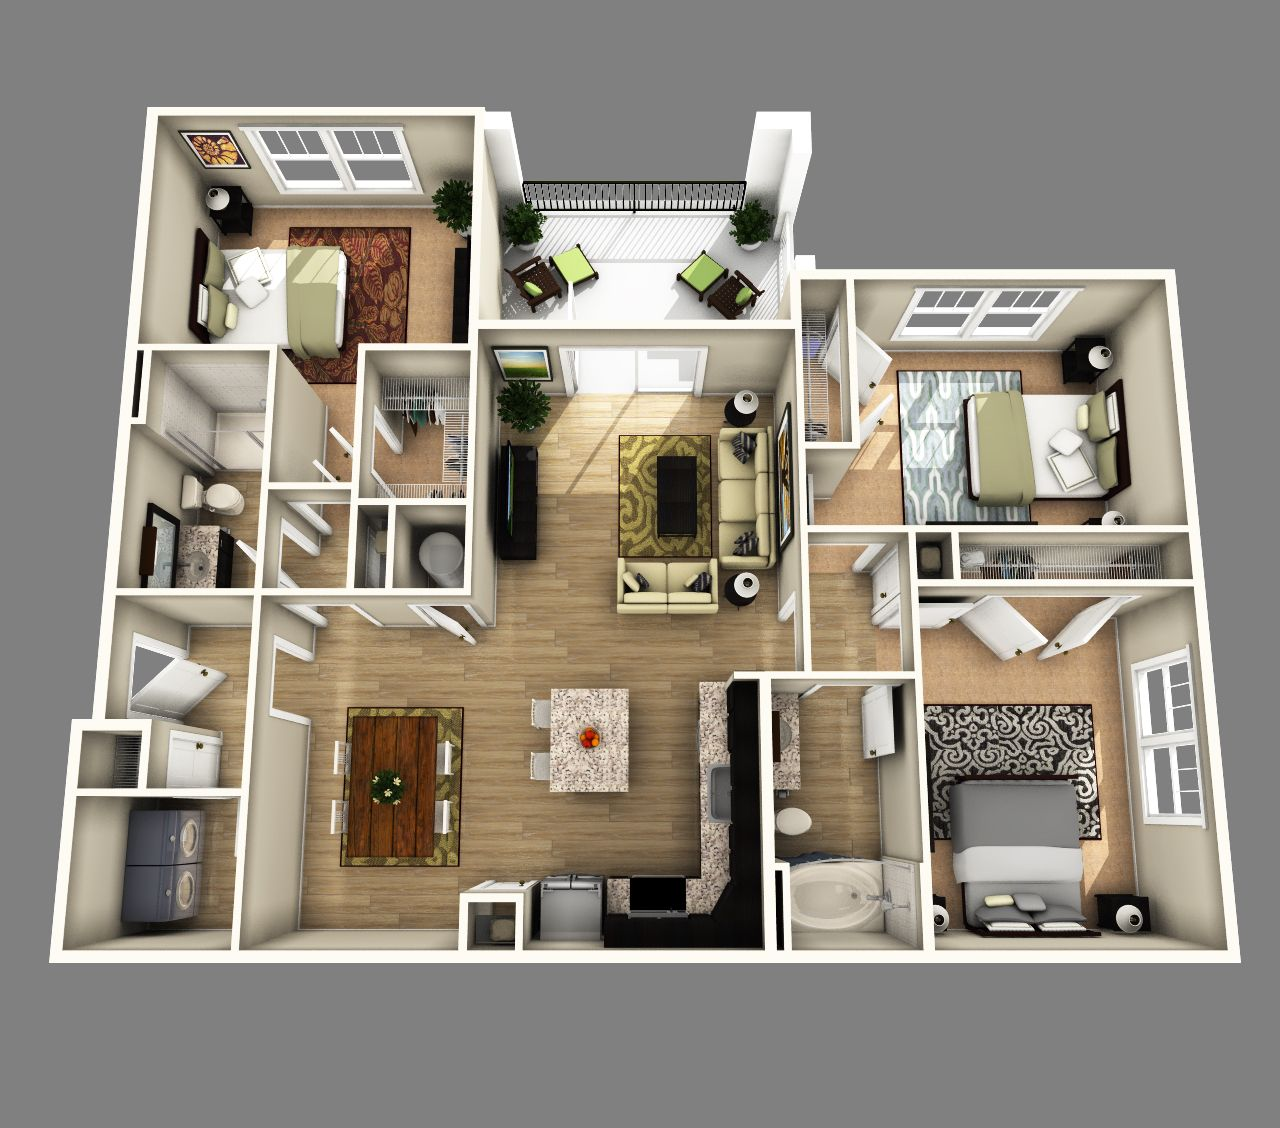 Open Floor Plan 3 Bedroom 2 Bathroom Google Search Nice Apartmentsapartments For Rent